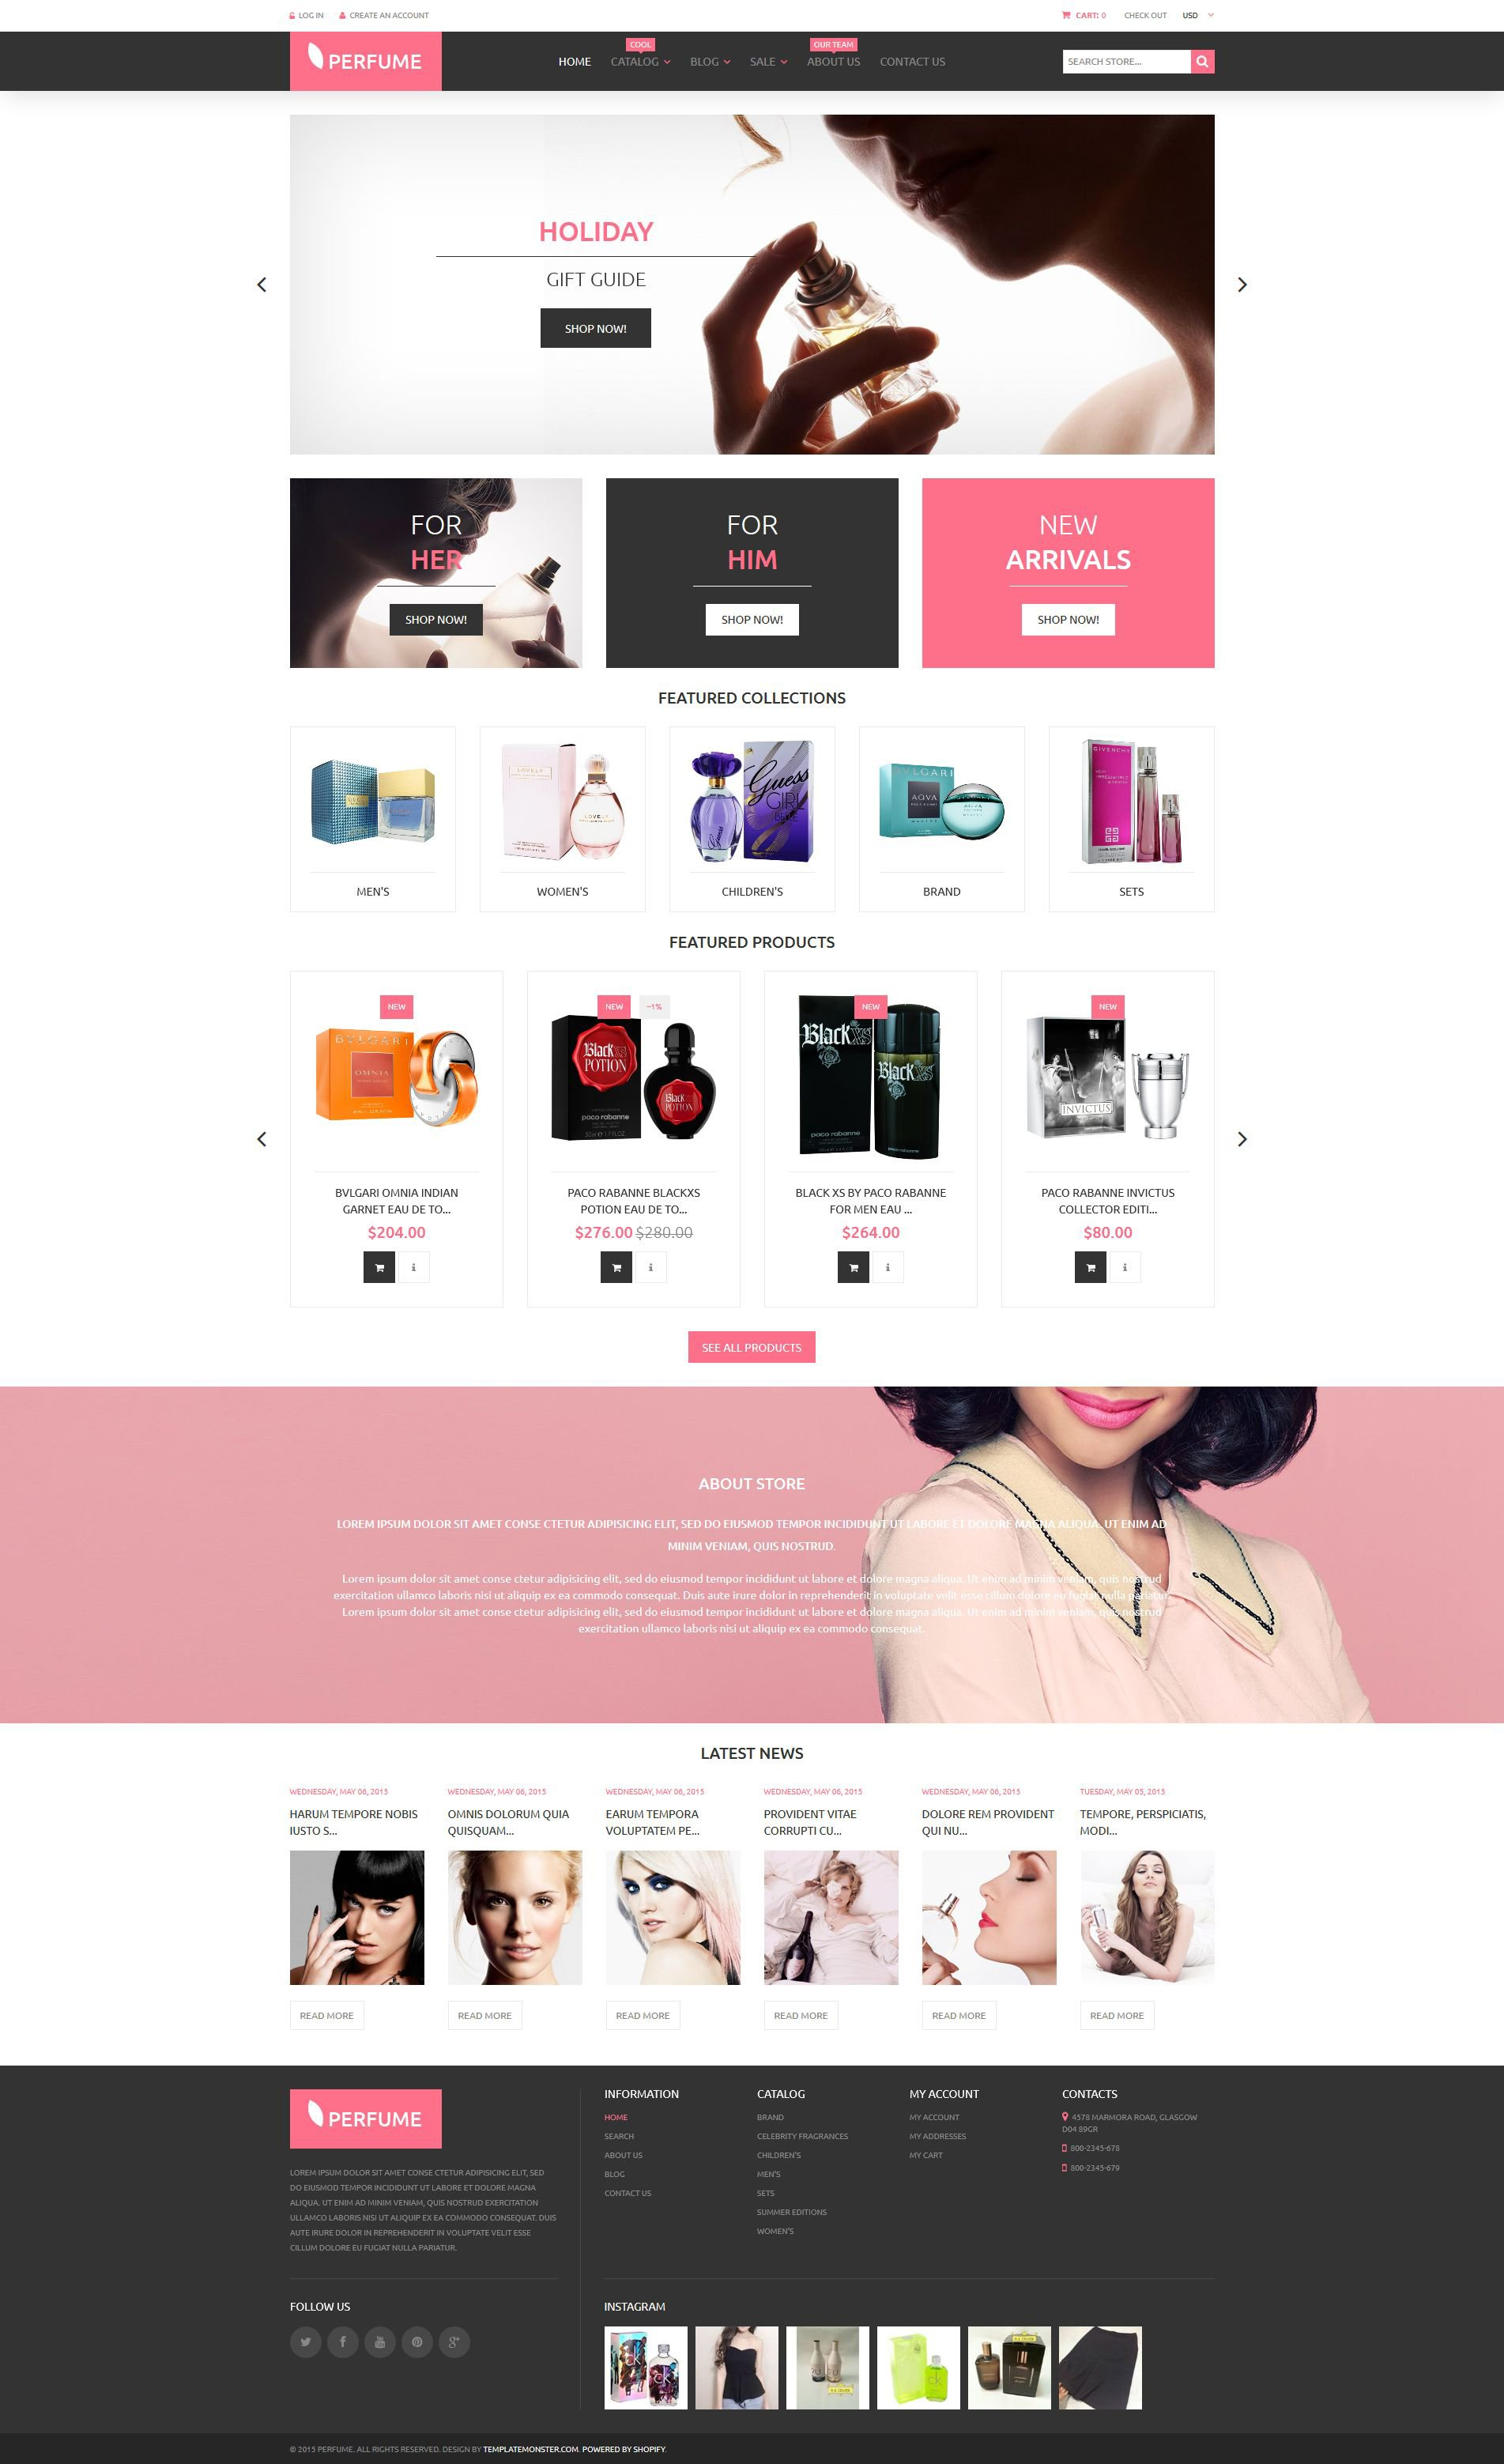 The Perfume Online Shop Shopify Design 53949, one of the best Shopify themes of its kind (beauty, most popular), also known as perfume online shop Shopify template, cosmetic Shopify template, beauty Shopify template, fashion Shopify template, health care Shopify template, women solution Shopify template, service Shopify template, catalogue Shopify template, product Shopify template, gift Shopify template, skincare Shopify template, hair care Shopify template, style Shopify template, cream Shopify template, natural Shopify template, rejuvenation Shopify template, damping Shopify template, lifting Shopify template, peeling Shopify template, specials Shopify template, lipstick Shopify template, mascara Shopify template, nail Shopify template, polish Shopify template, shampoo Shopify template, body Shopify template, milk Shopify template, lotion Shopify template, hand Shopify template, client and related with perfume online shop, cosmetic, beauty, fashion, health care, women solution, service, catalogue, product, gift, skincare, hair care, style, cream, natural, rejuvenation, damping, lifting, peeling, specials, lipstick, mascara, nail, polish, shampoo, body, milk, lotion, hand, client, etc.